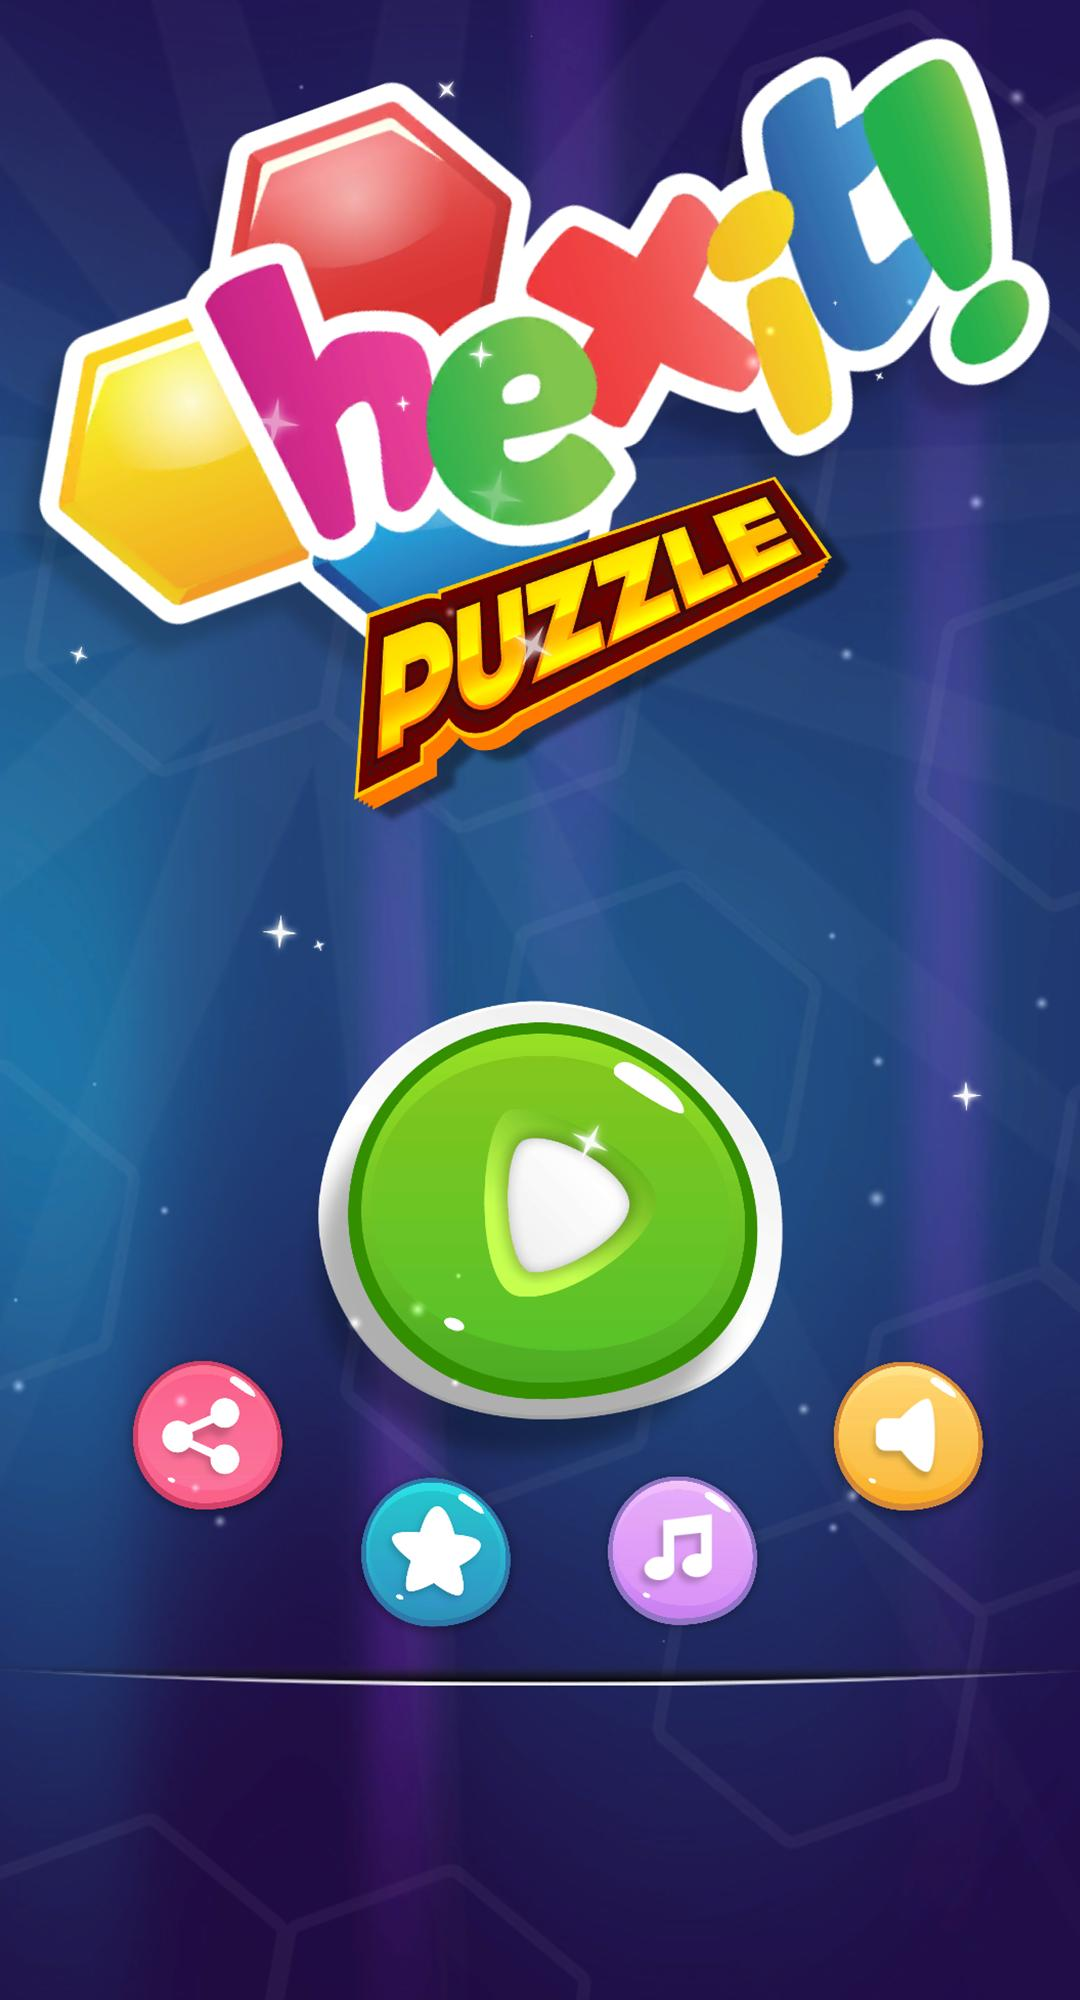 Hexit! Puzzle for Android - APK Download